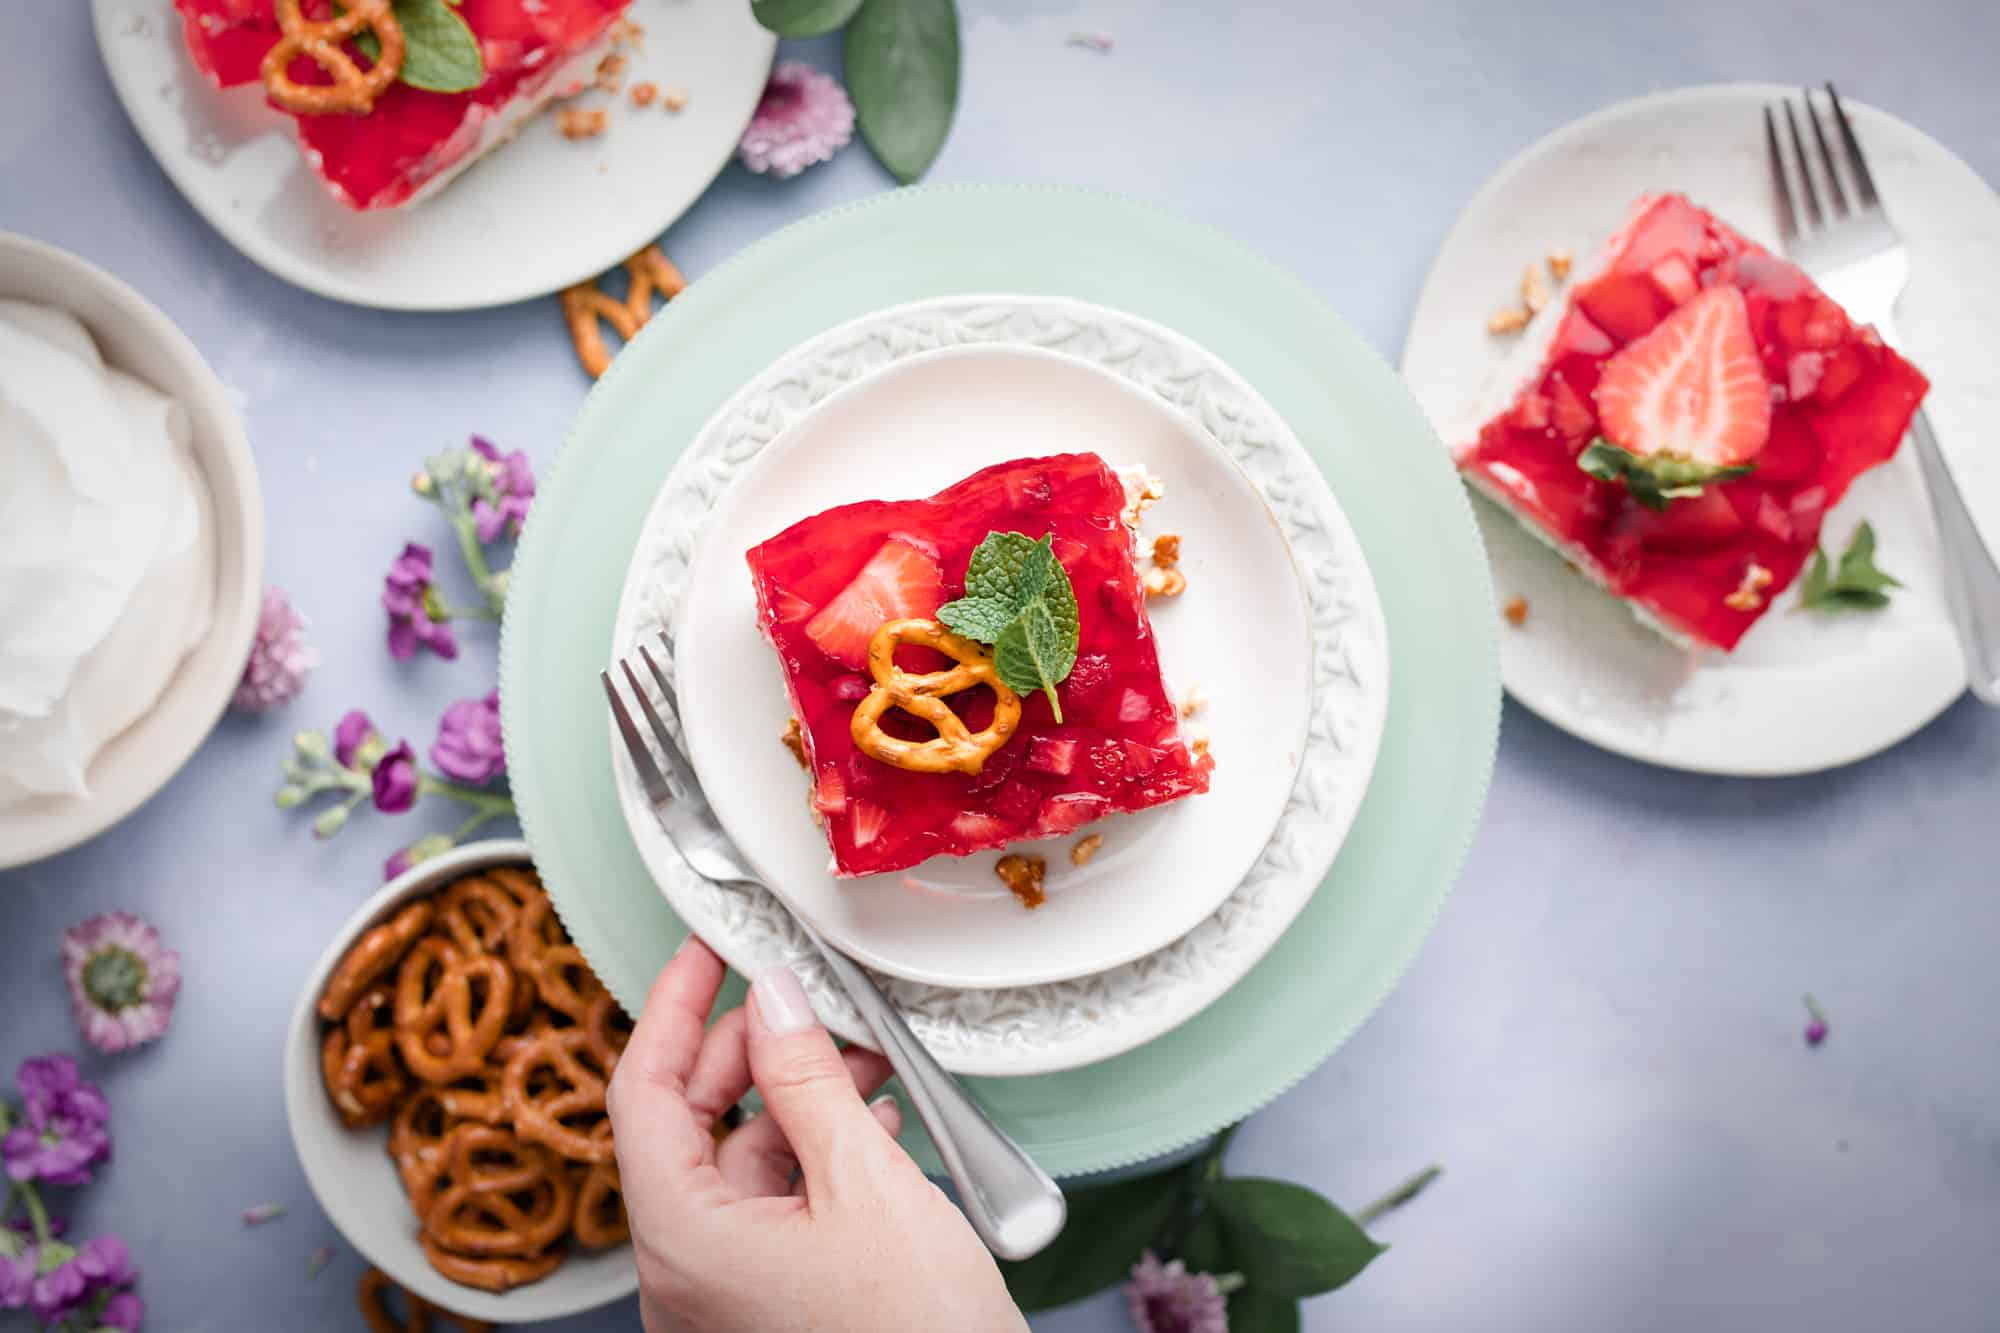 a plate with a dessert topped with strawberry jello and garnished with a pretzel